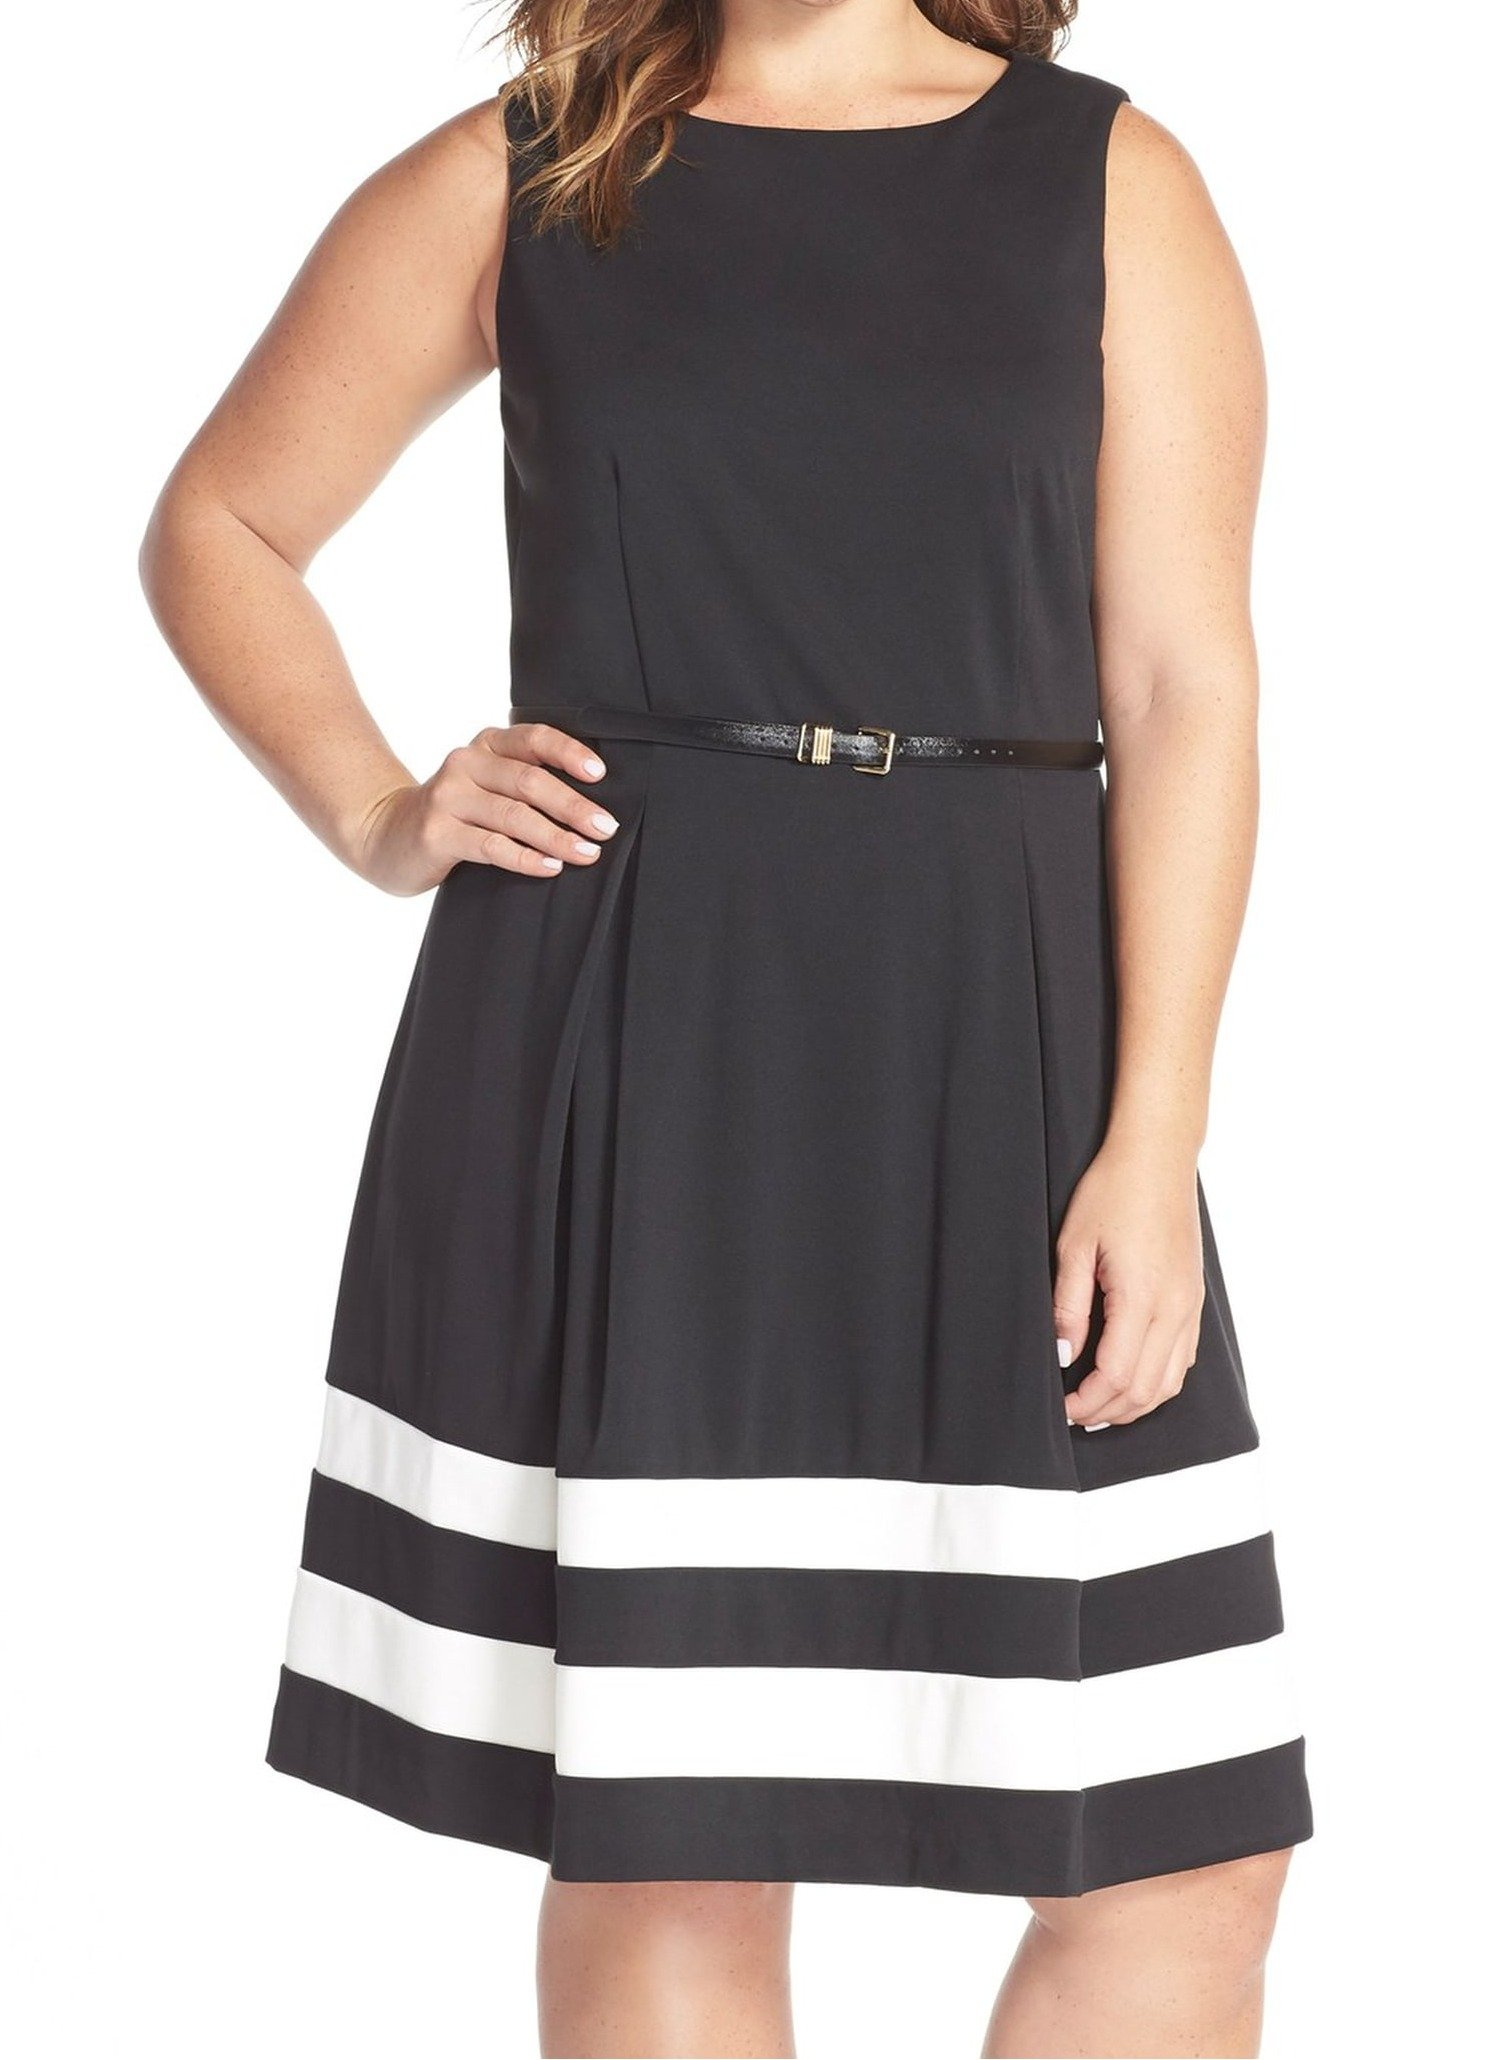 Calvin Klein Women's Plus-Size Sleeveless Belted Stripe Fit and Flare Dress, Black/Ivory, 14W